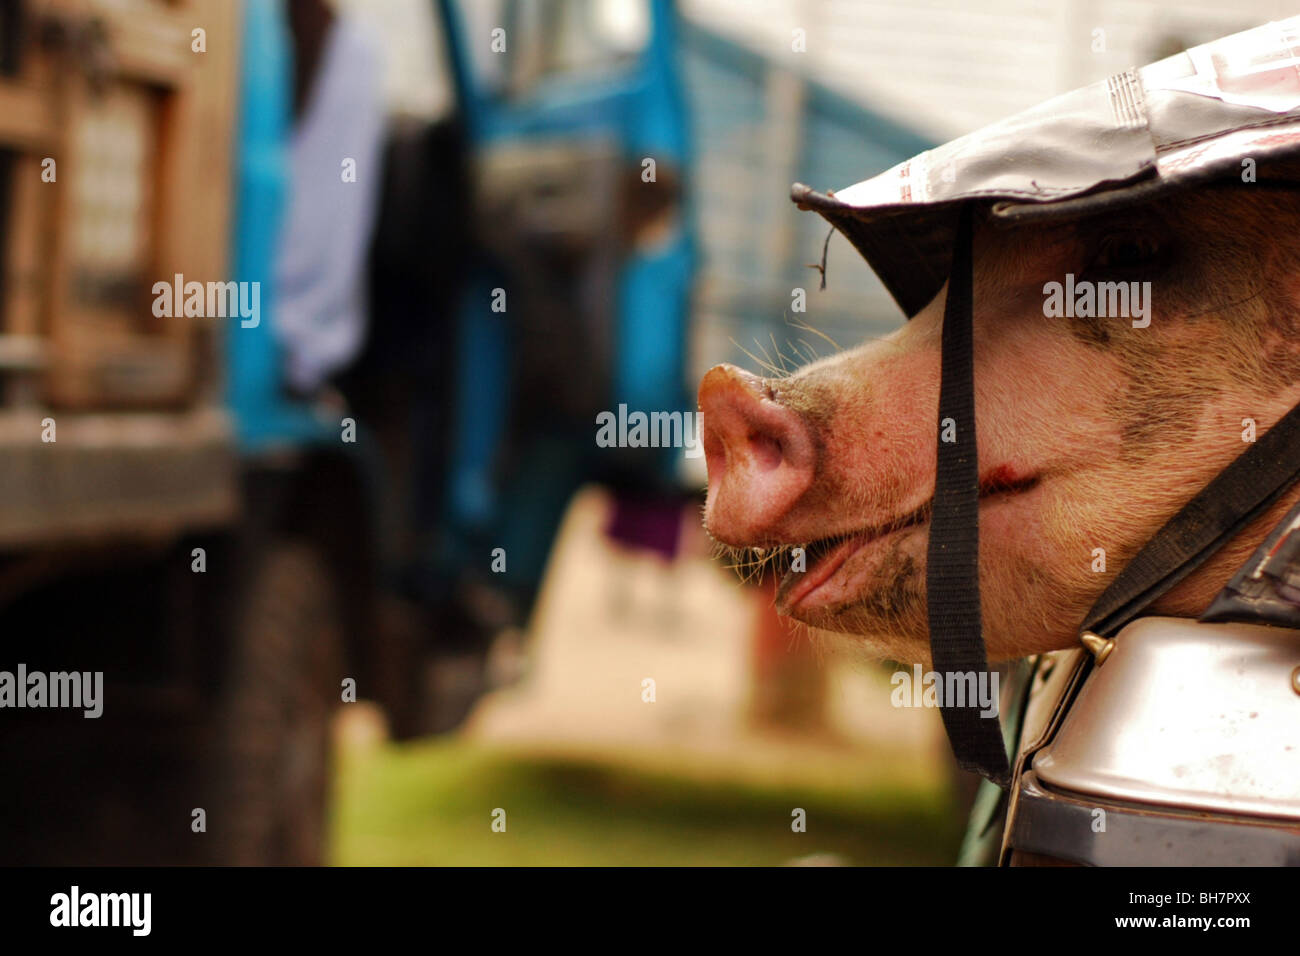 Ecuador, Otavalo, the pink nose of a pig stuck at the back of a pick-up under a plastic sheet, sneaking out, at - Stock Image